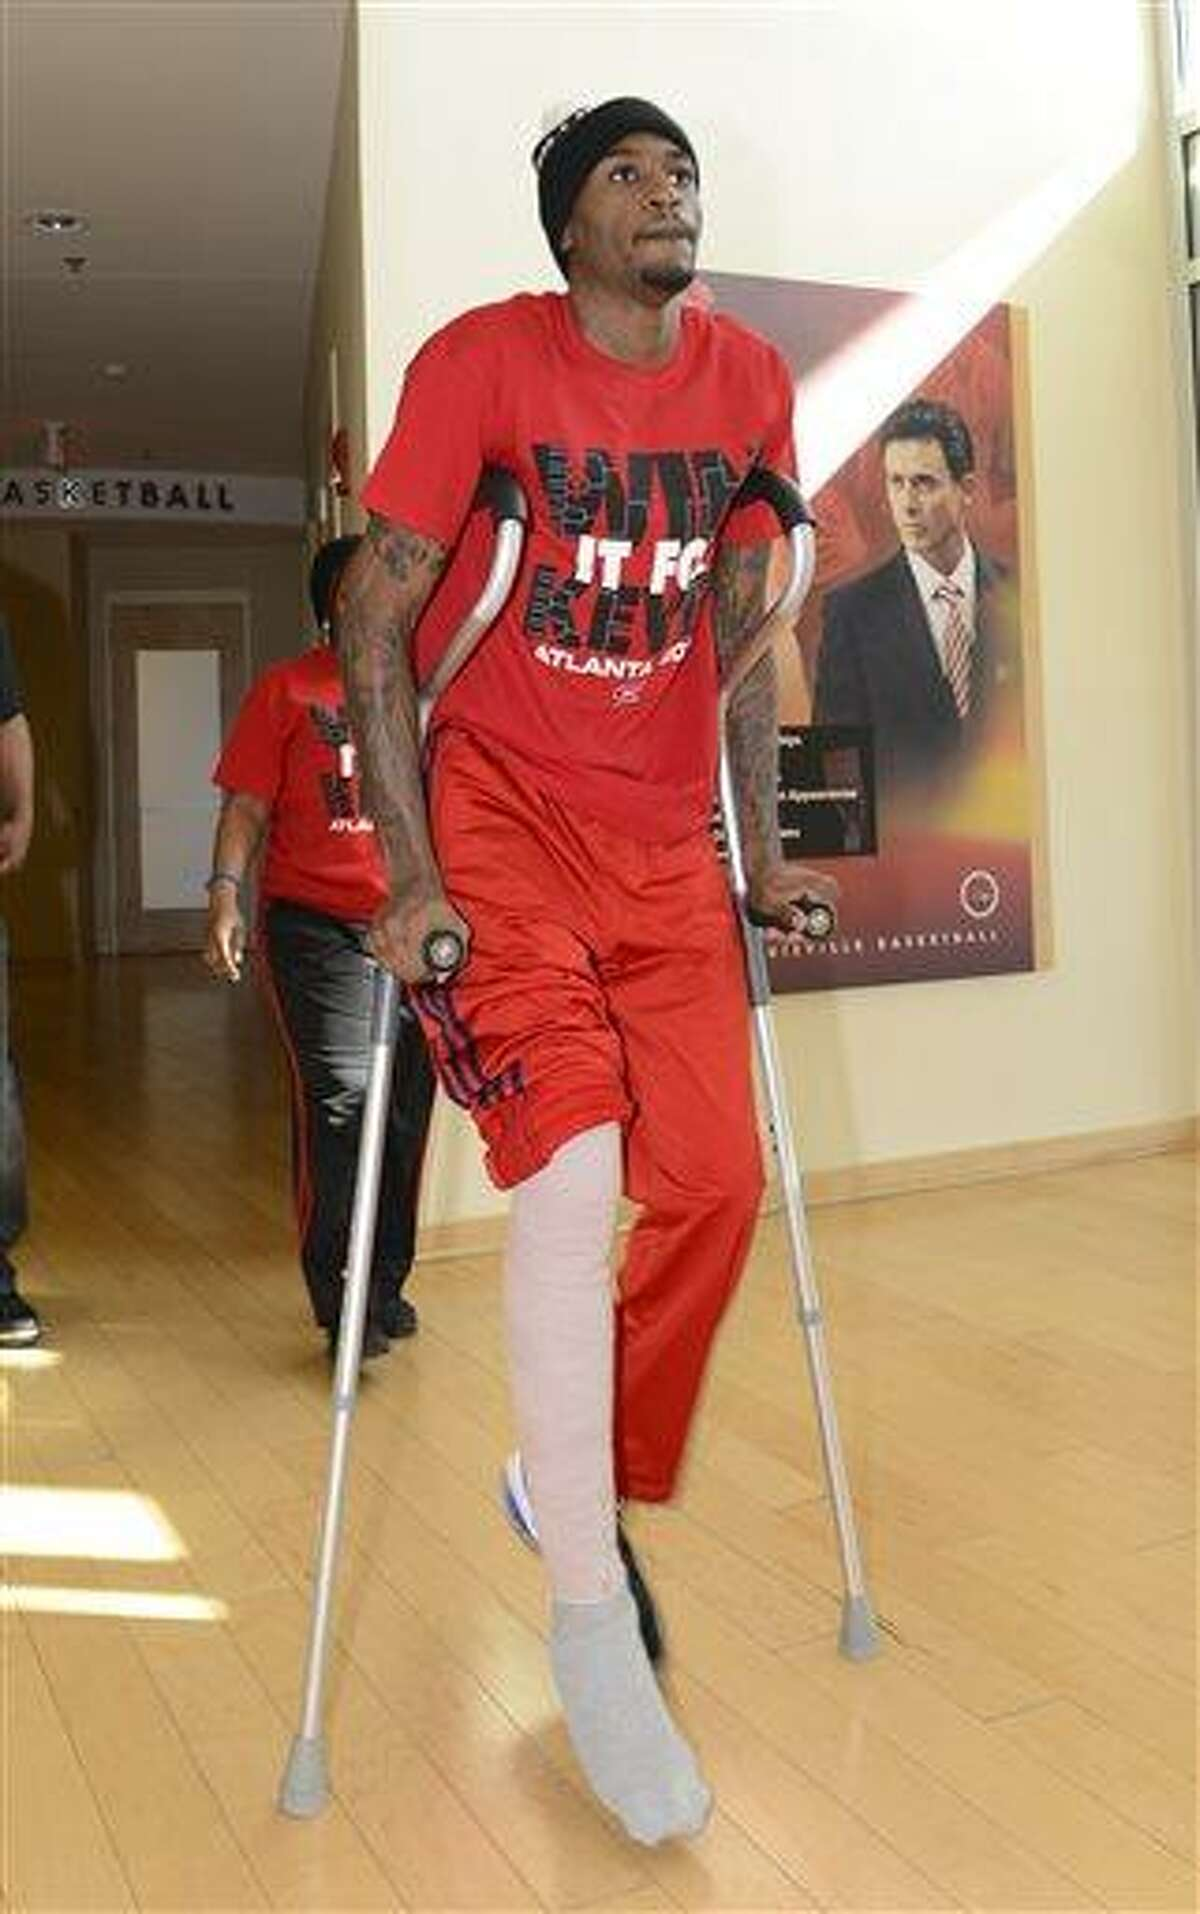 Louisville basketball player Kevin Ware arrives for an interview Wednesday April 3, 2013, at the KFC Yum! Center practice facility in Louisville, Ky. Ware was released from an Indianapolis hospital Tuesday, two days after millions watched him break his right leg on a horrifying play trying to block a shot during an NCAA college basketball regional championship game against Duke. (AP Photo/Timothy D. Easley)